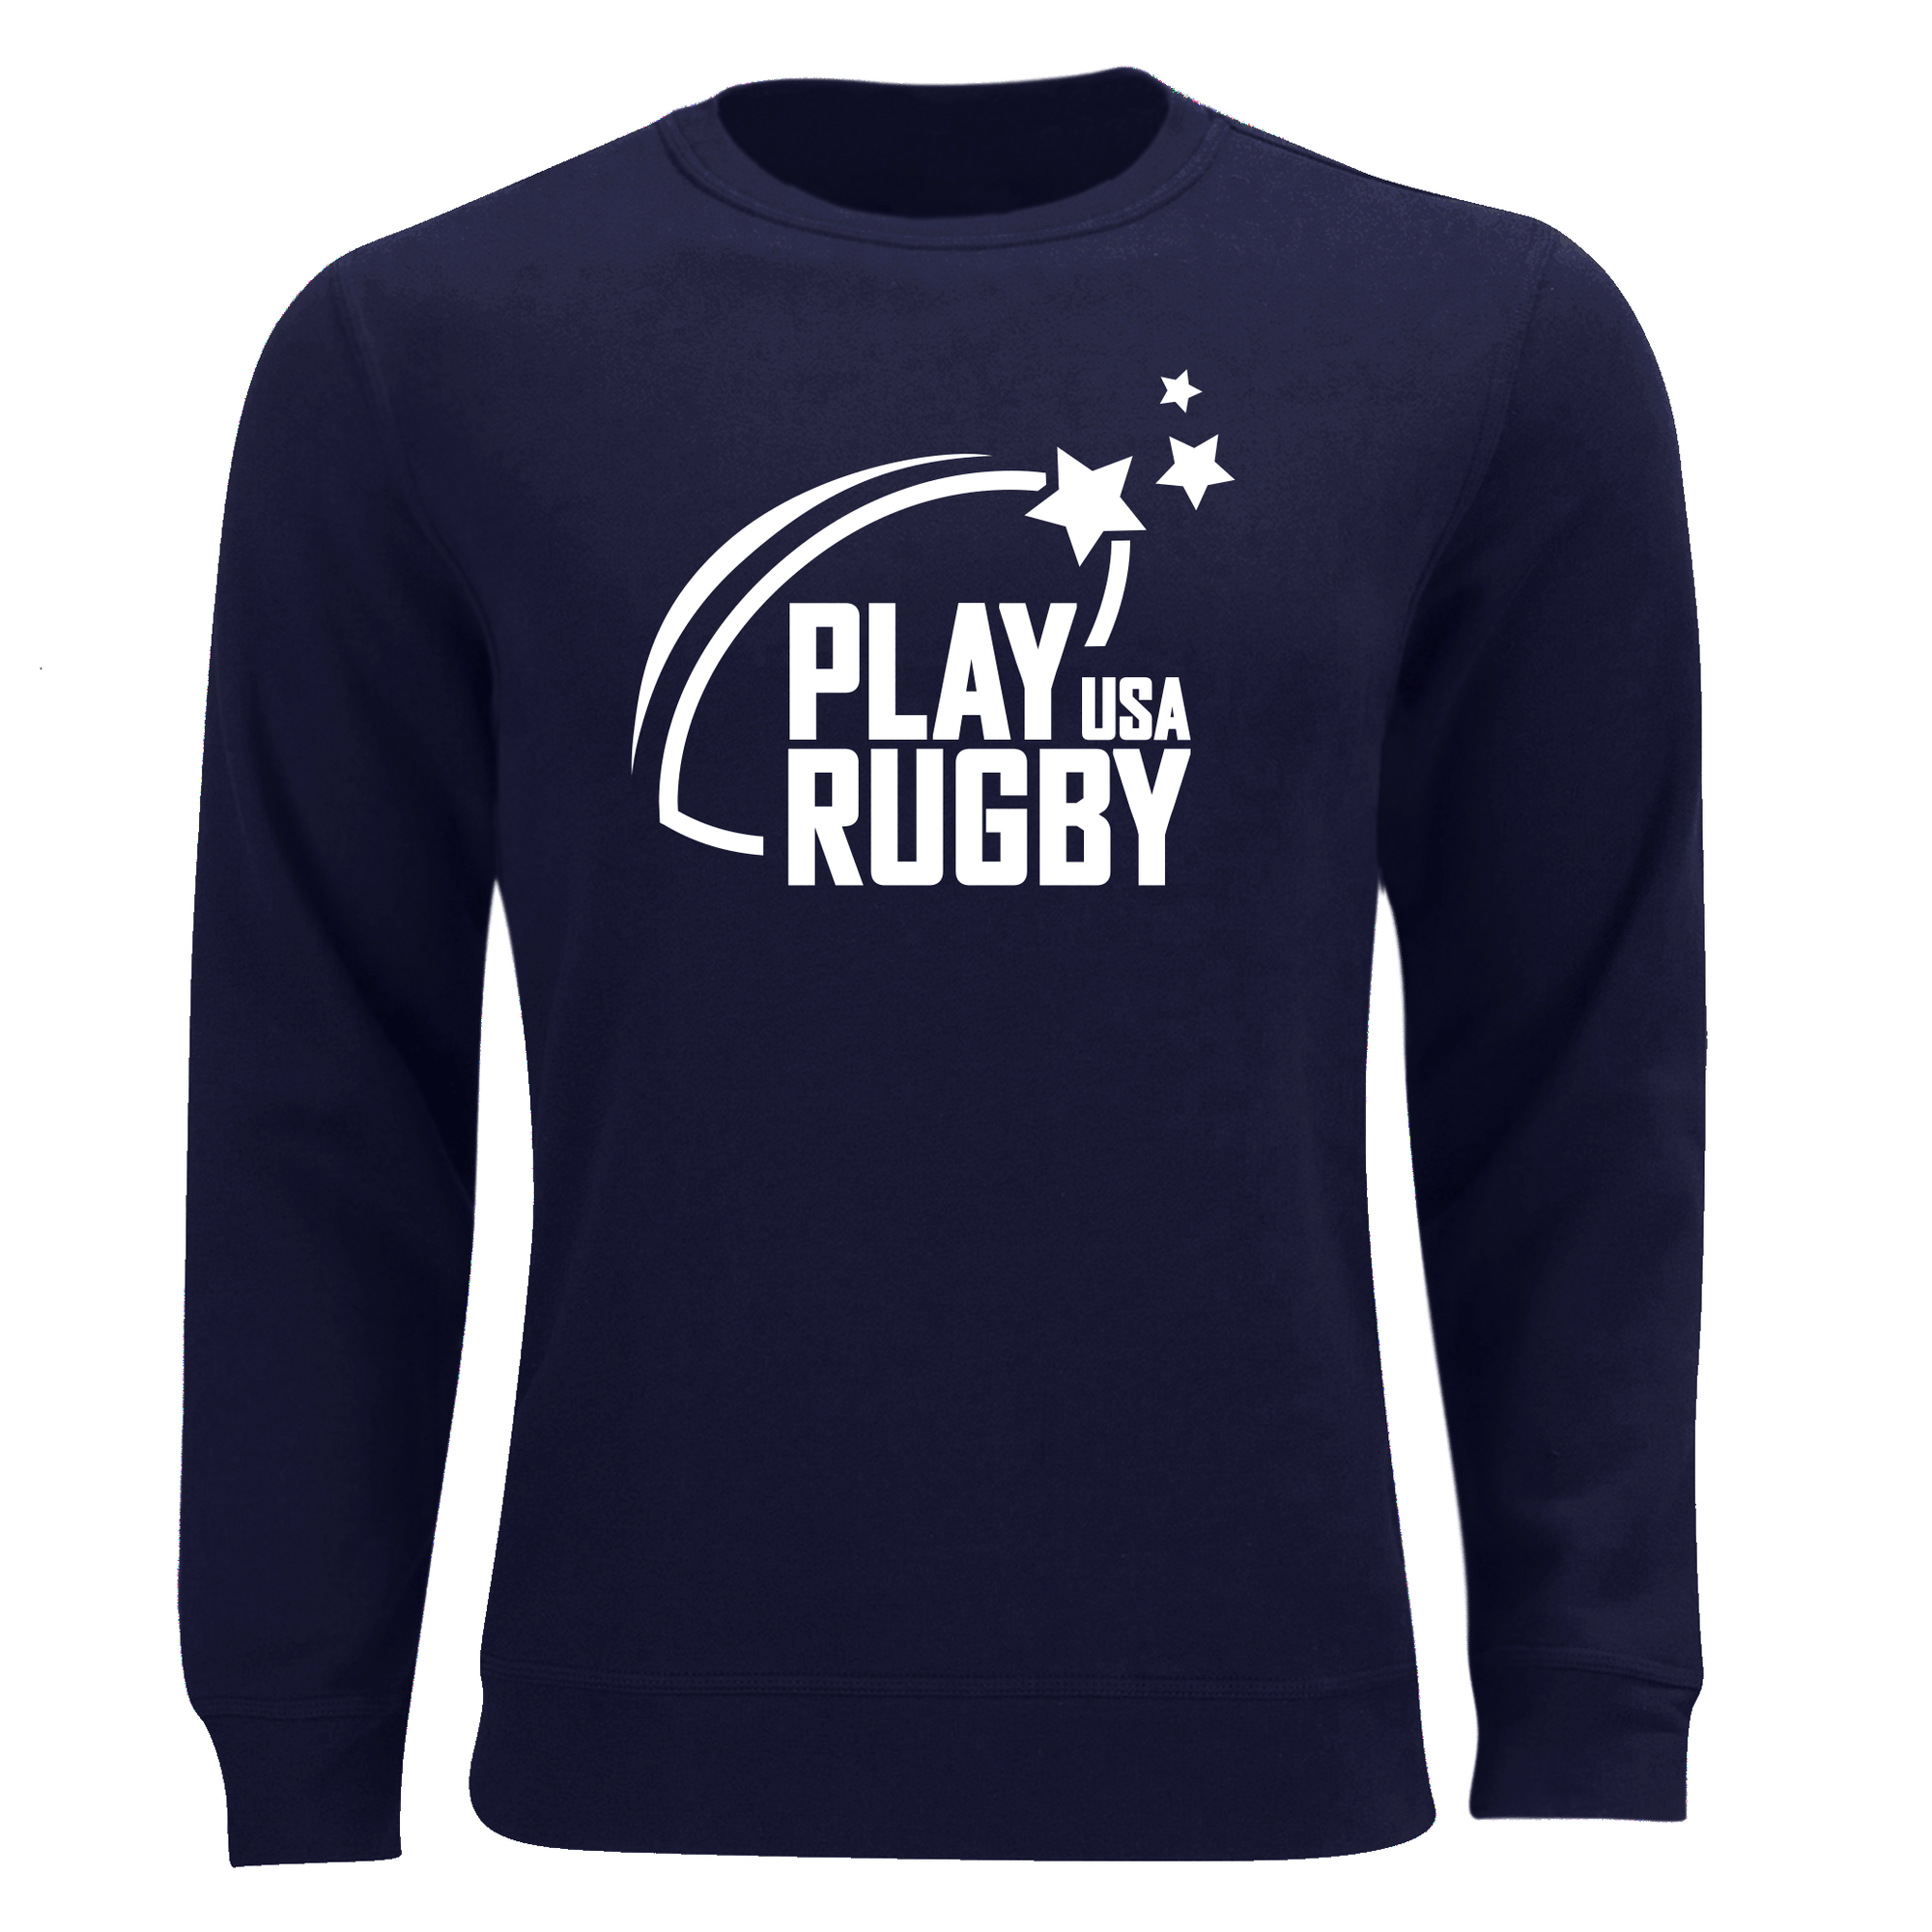 Play Rugby USA Unisex Sweatshirt Navy